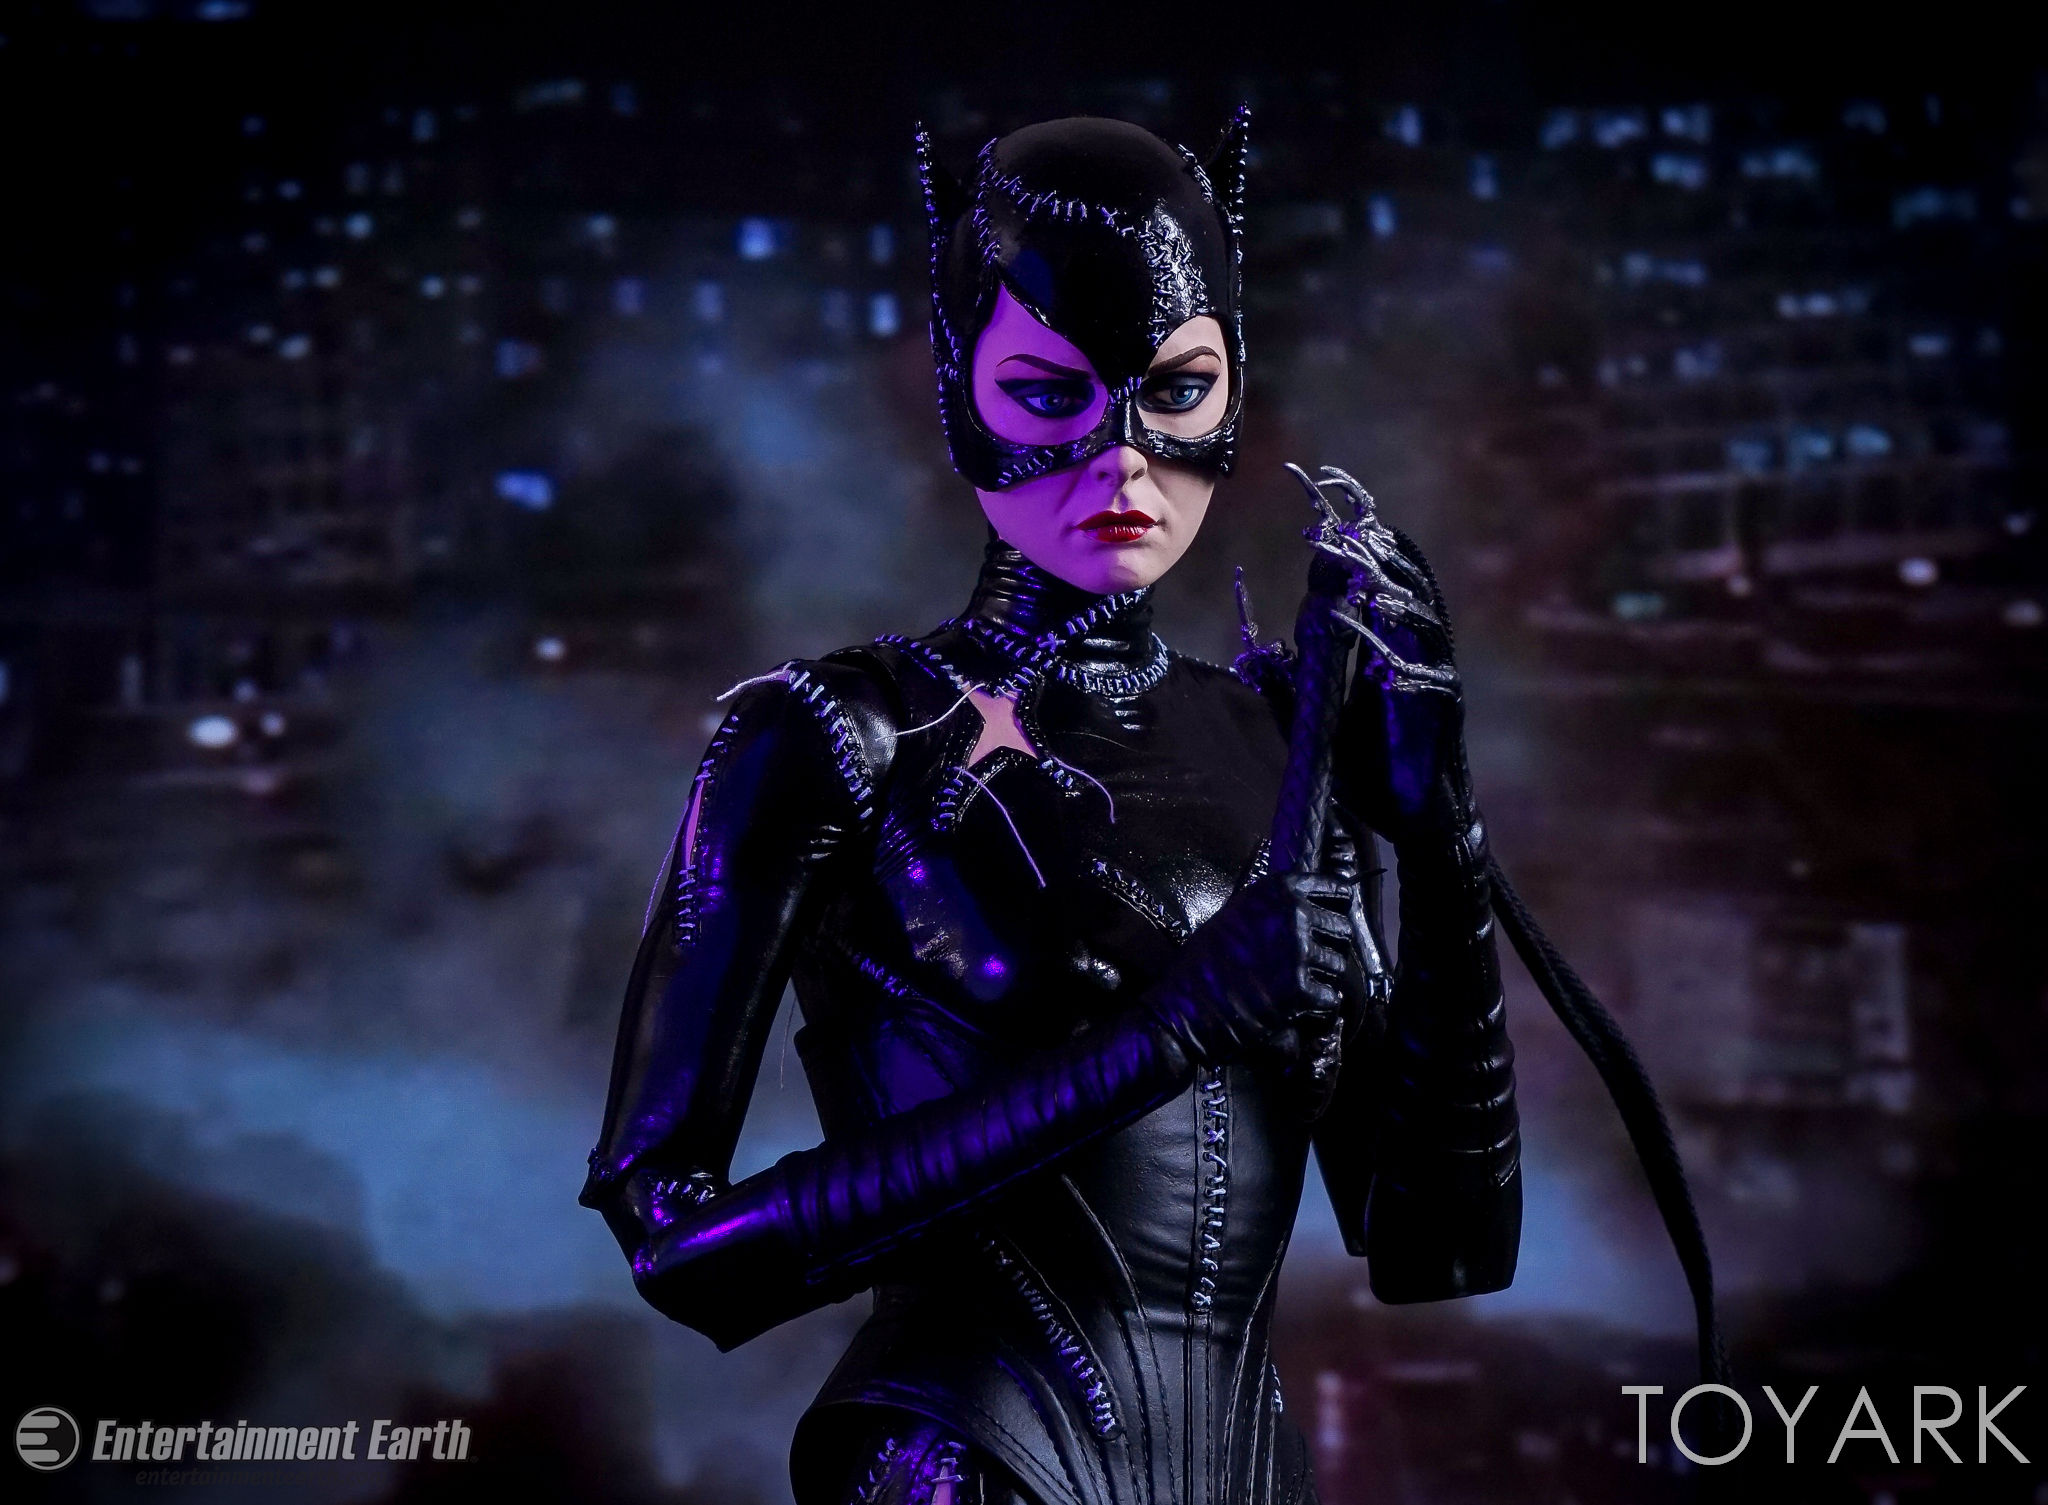 http://news.toyark.com/wp-content/uploads/sites/4/2017/03/NECA-Batman-Returns-Catwoman-022.jpg